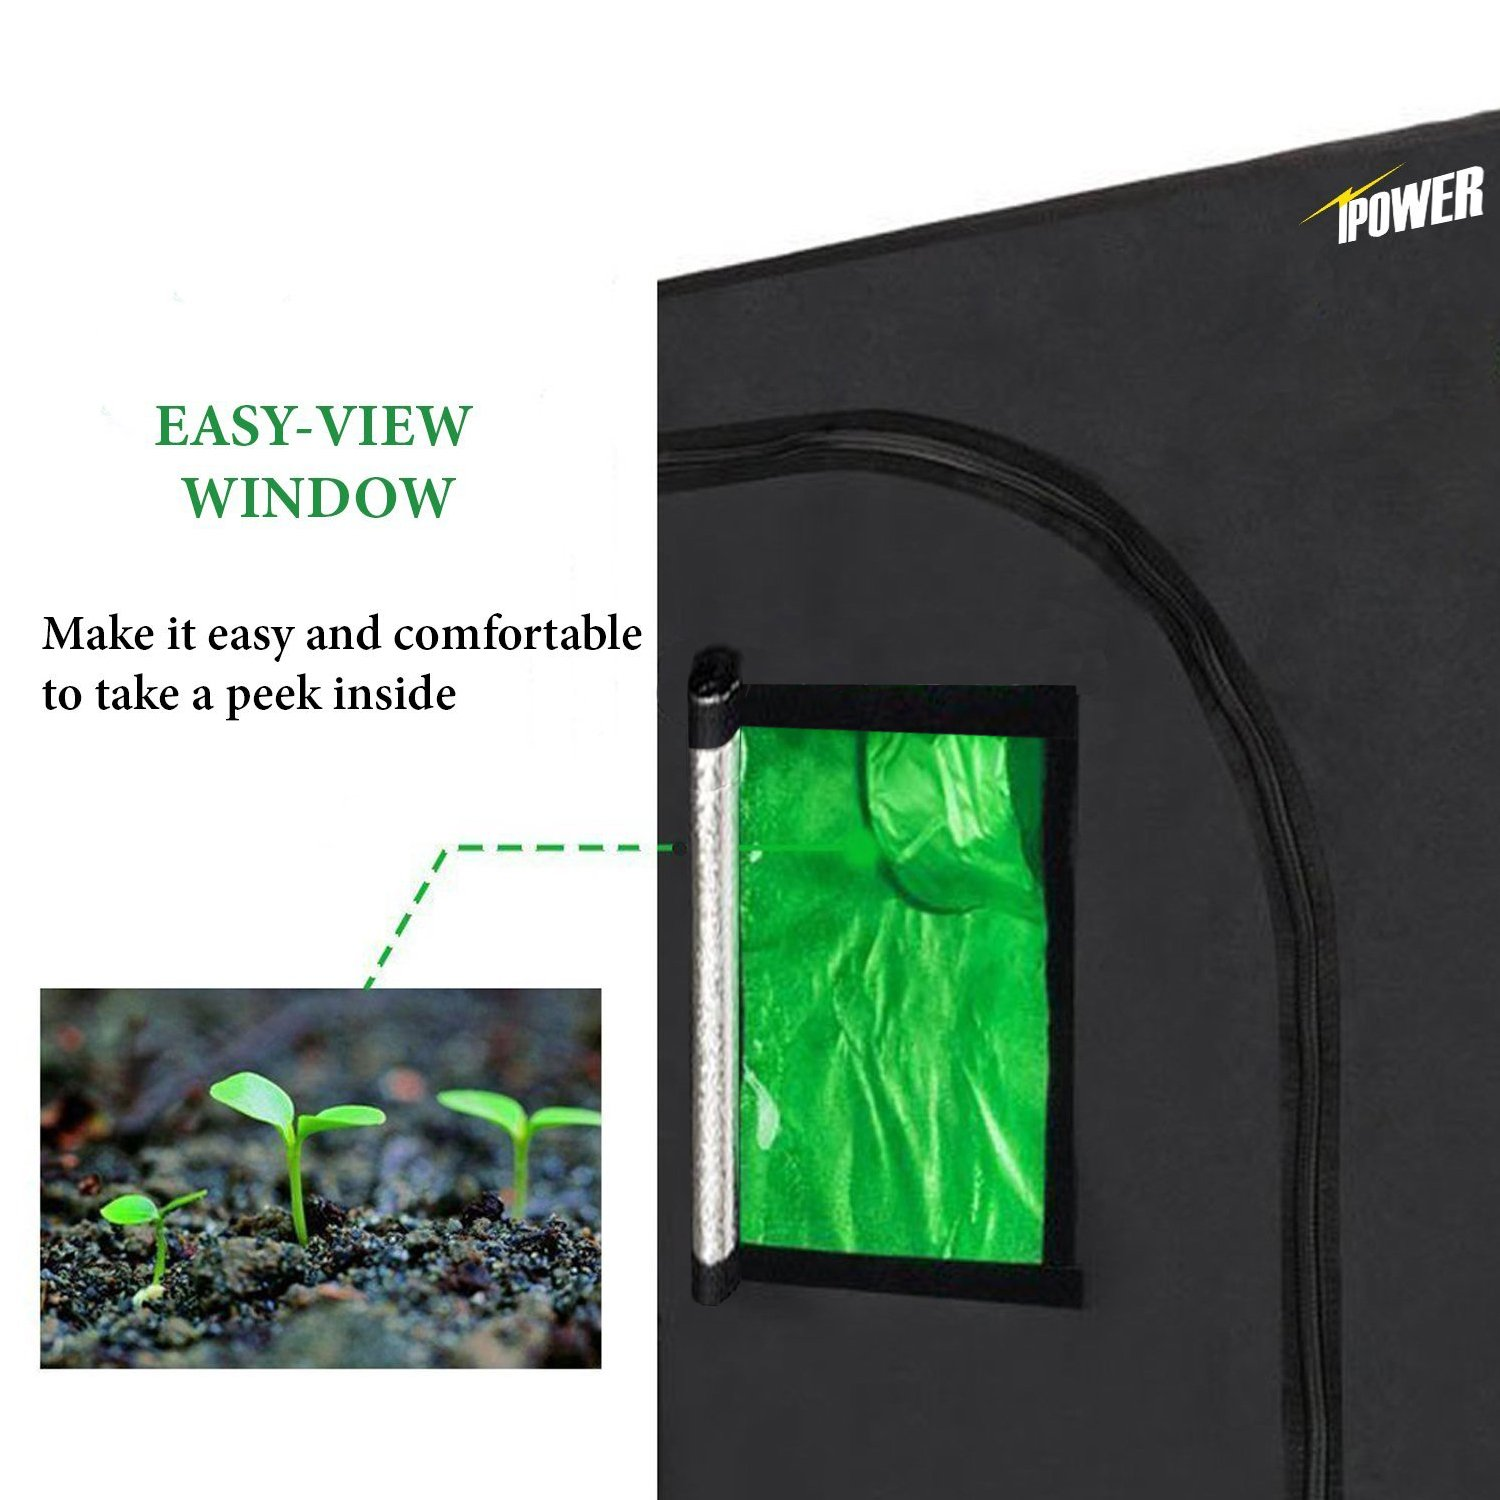 iPower 48''x48''x78'' 4'x4' Hydroponic Mylar Grow Tent with Observation Window, Tool Bag and Floor Tray for Grow Light and Indoor Plant Growing by iPower (Image #3)